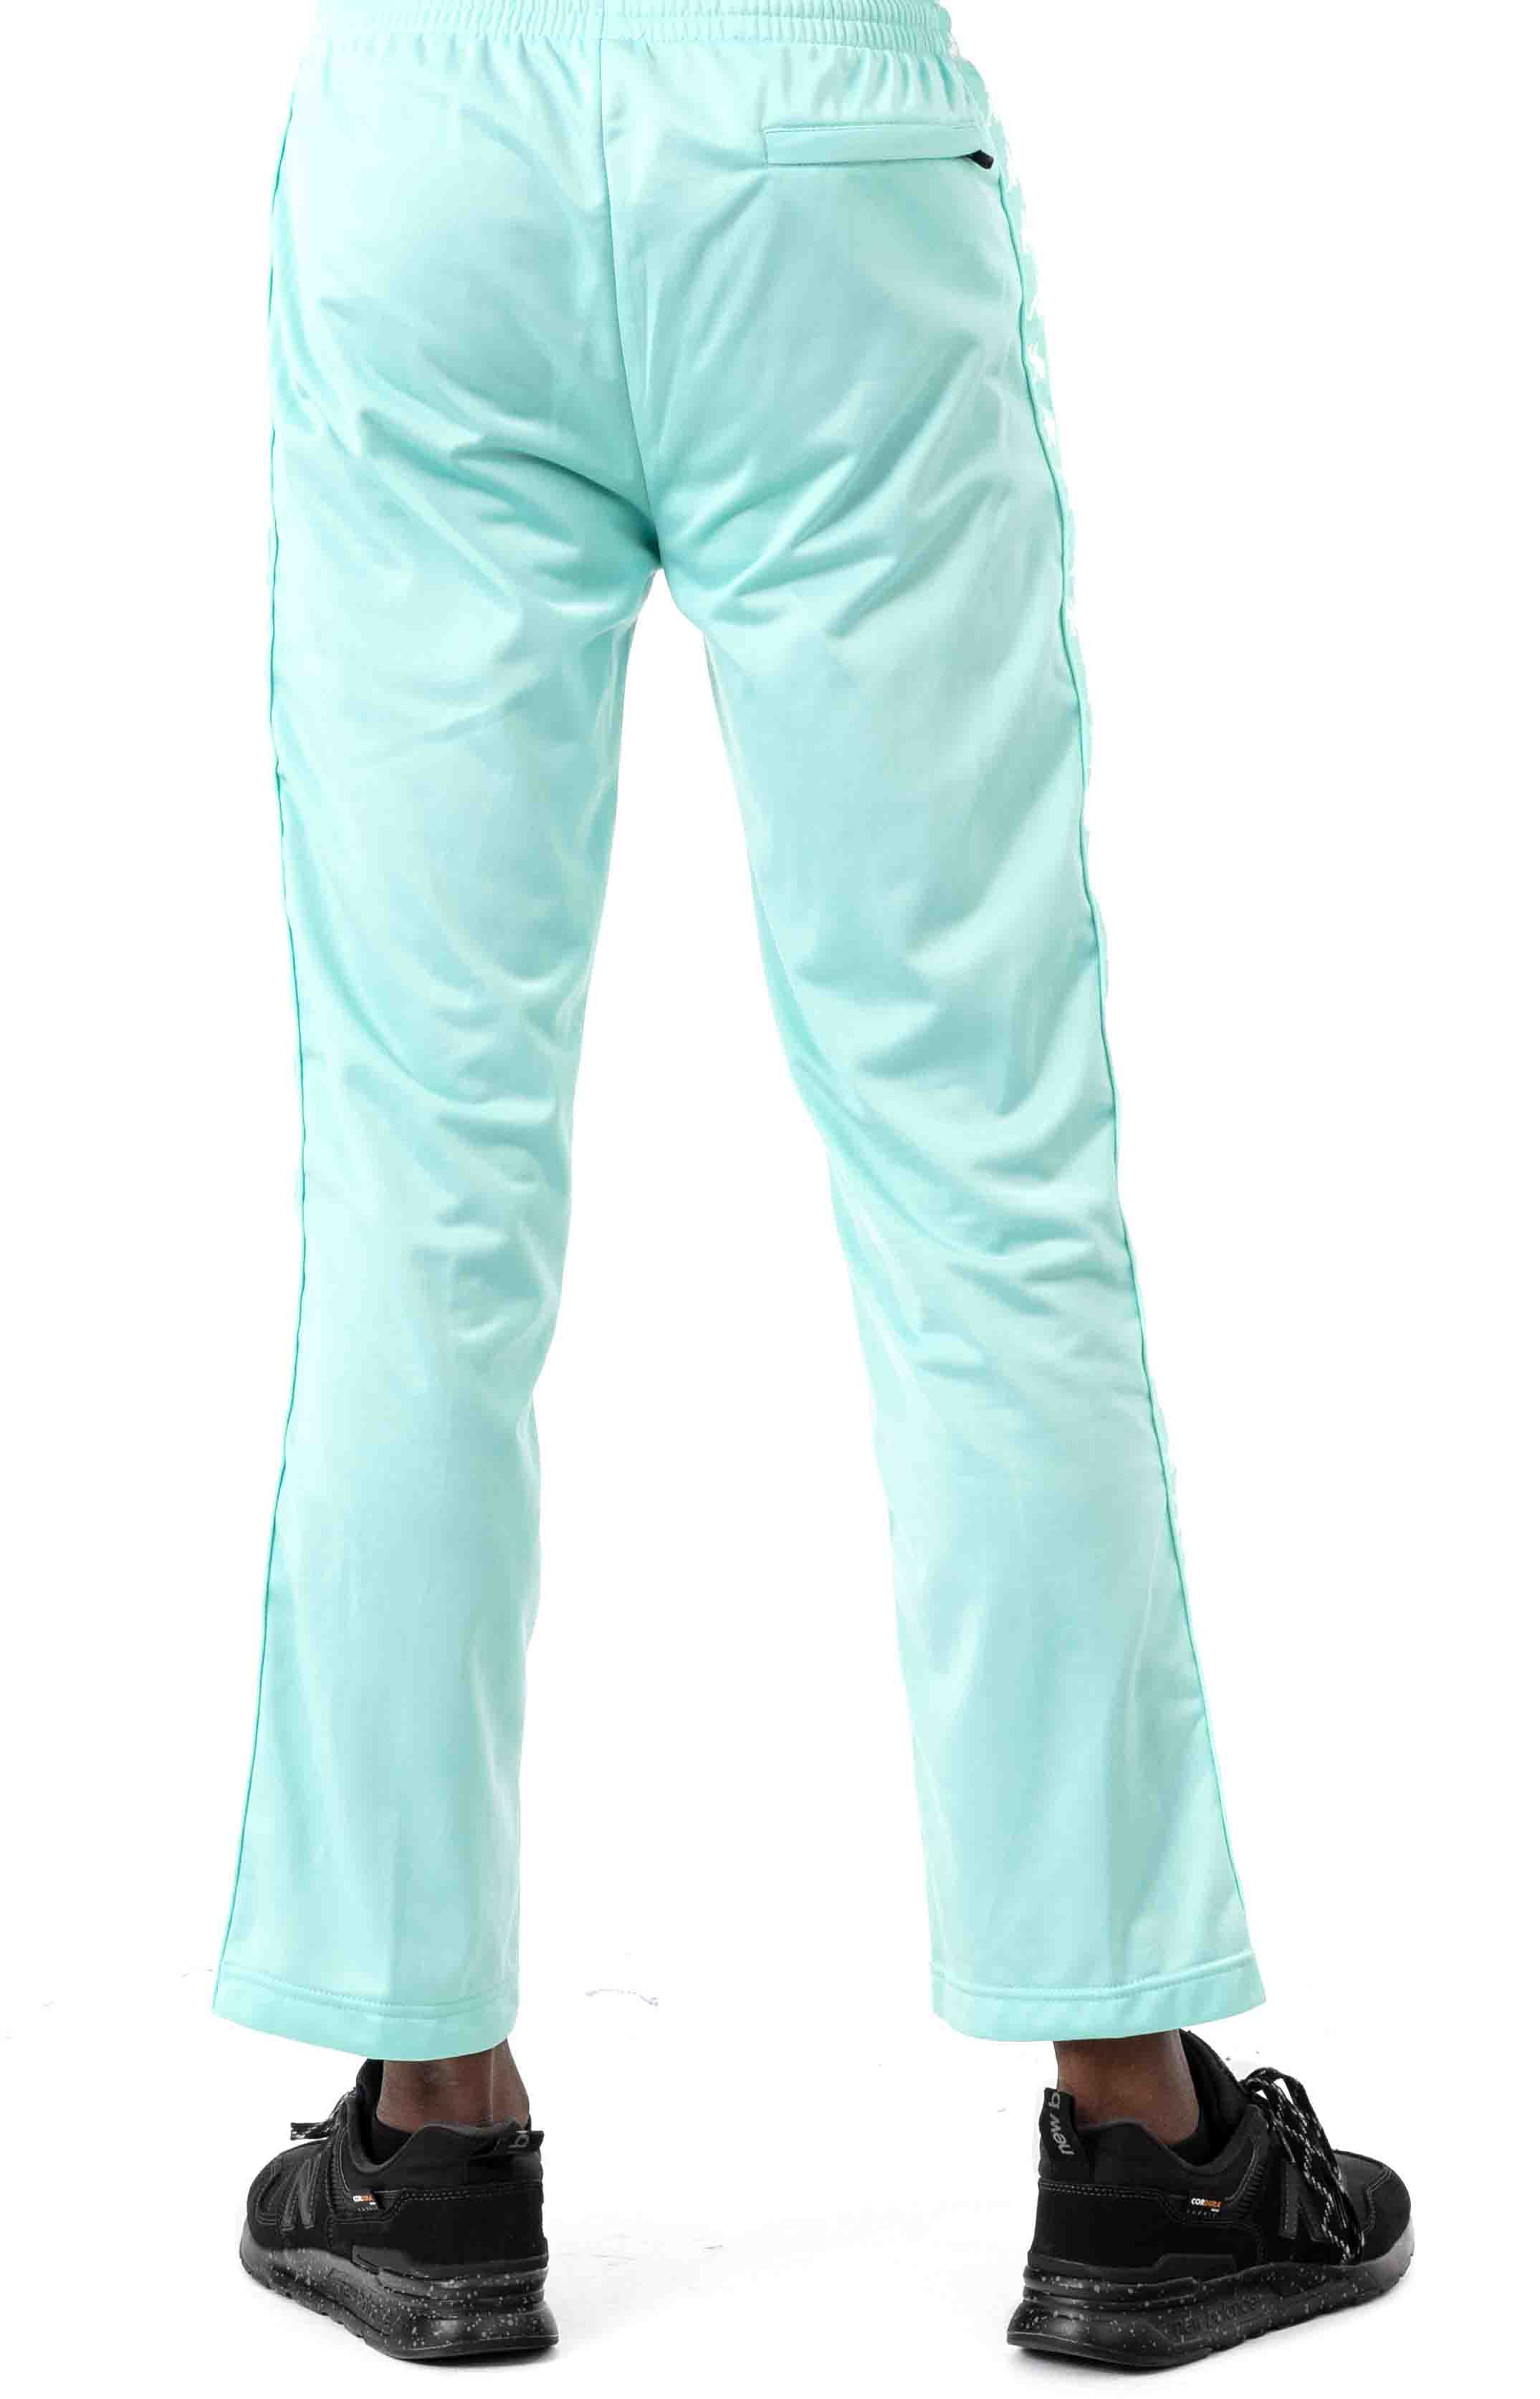 222 Banda Astoriazz Trackpant - Green Aqua  3